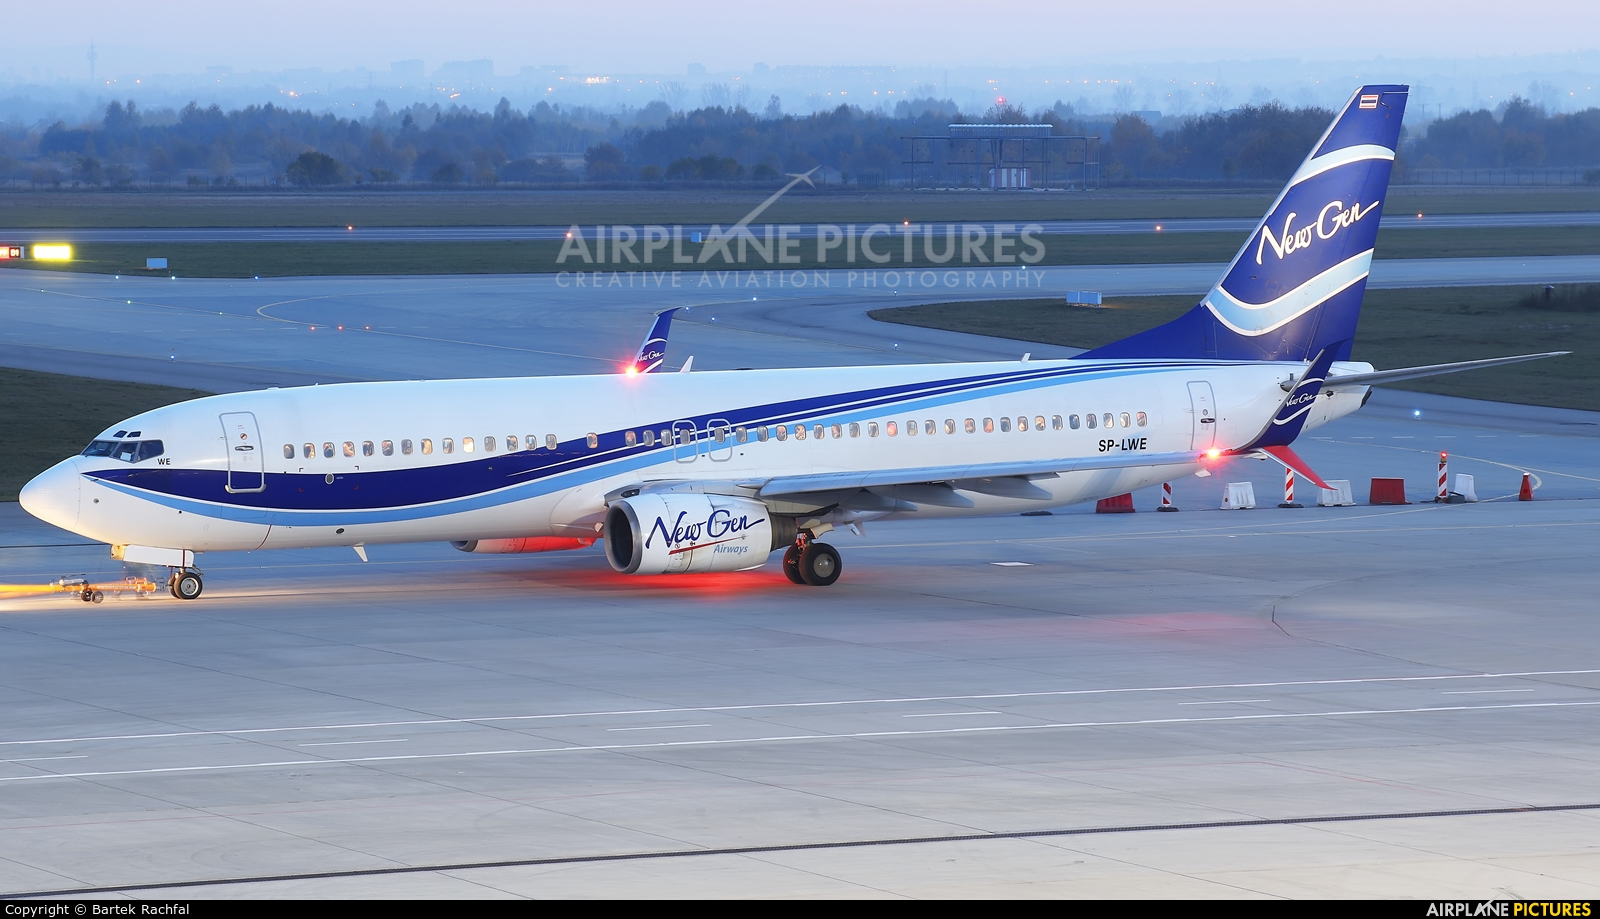 LOT - Polish Airlines SP-LWE aircraft at Rzeszów-Jasionka